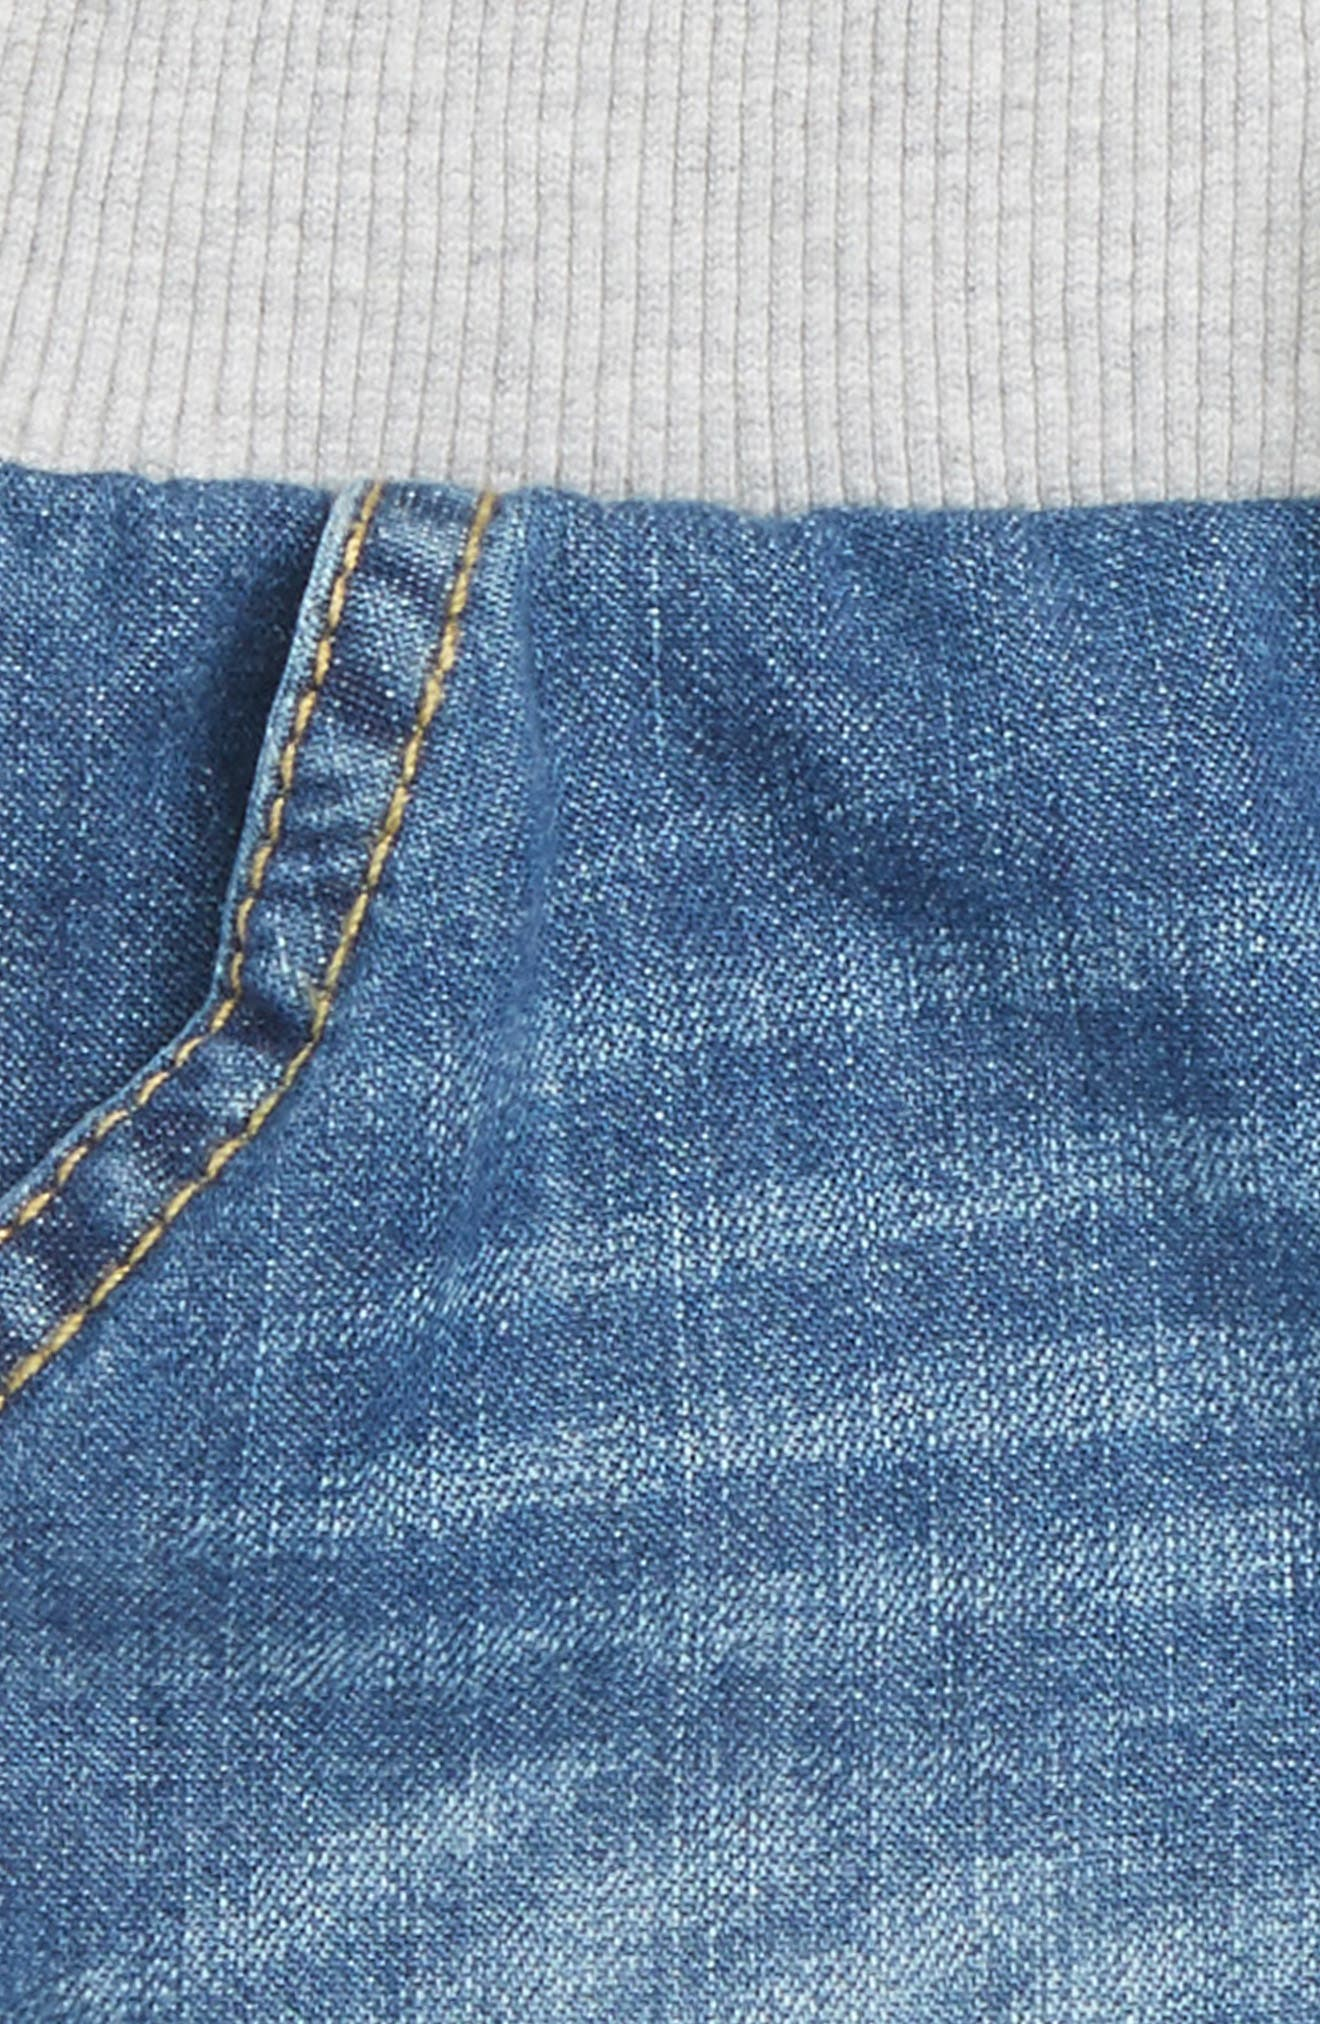 Woven Cotton Shorts,                             Alternate thumbnail 2, color,                             Blue River Wash